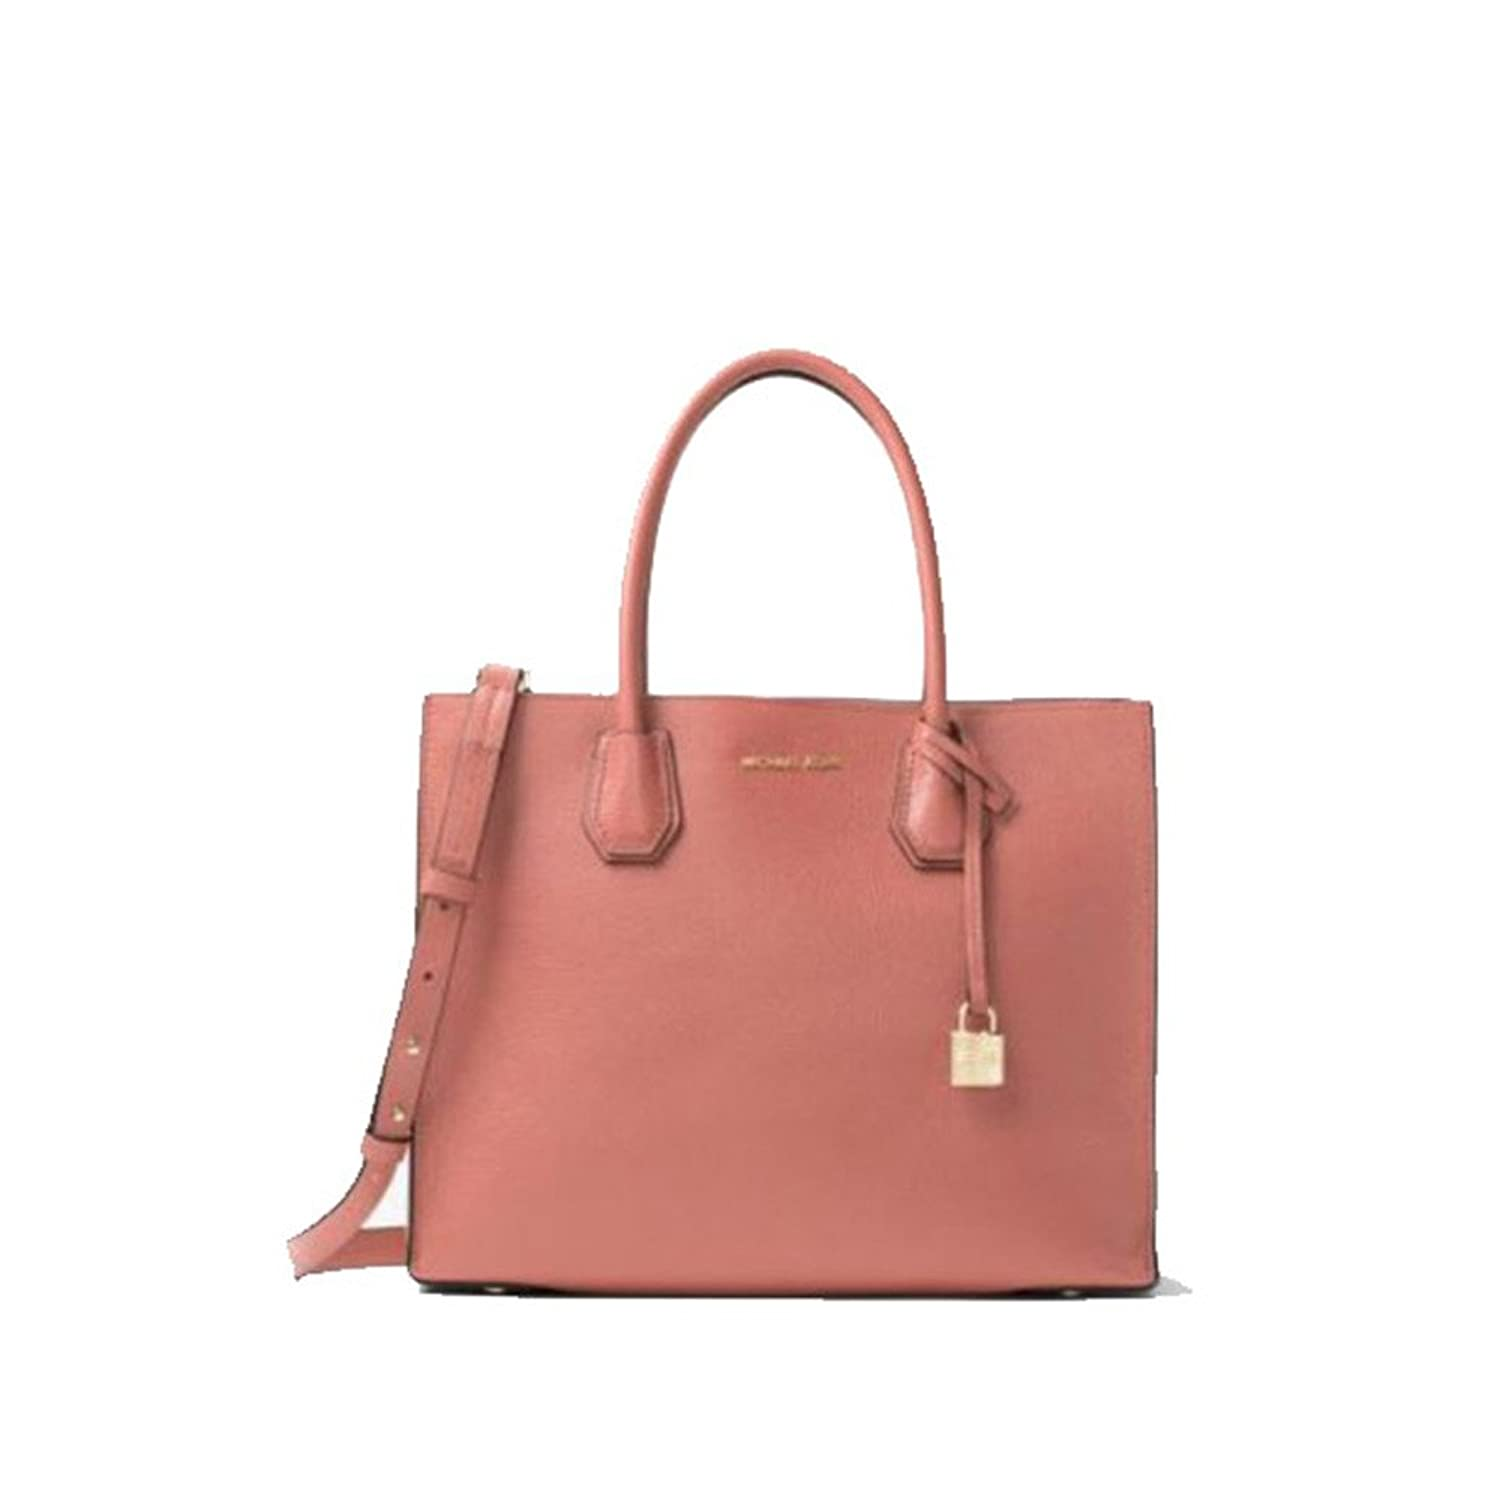 MICHAEL KORS MERCER LARGE BONDED-LEATHER TOTE ANTIQUE ROSE [並行輸入品] B01M3T8UAS